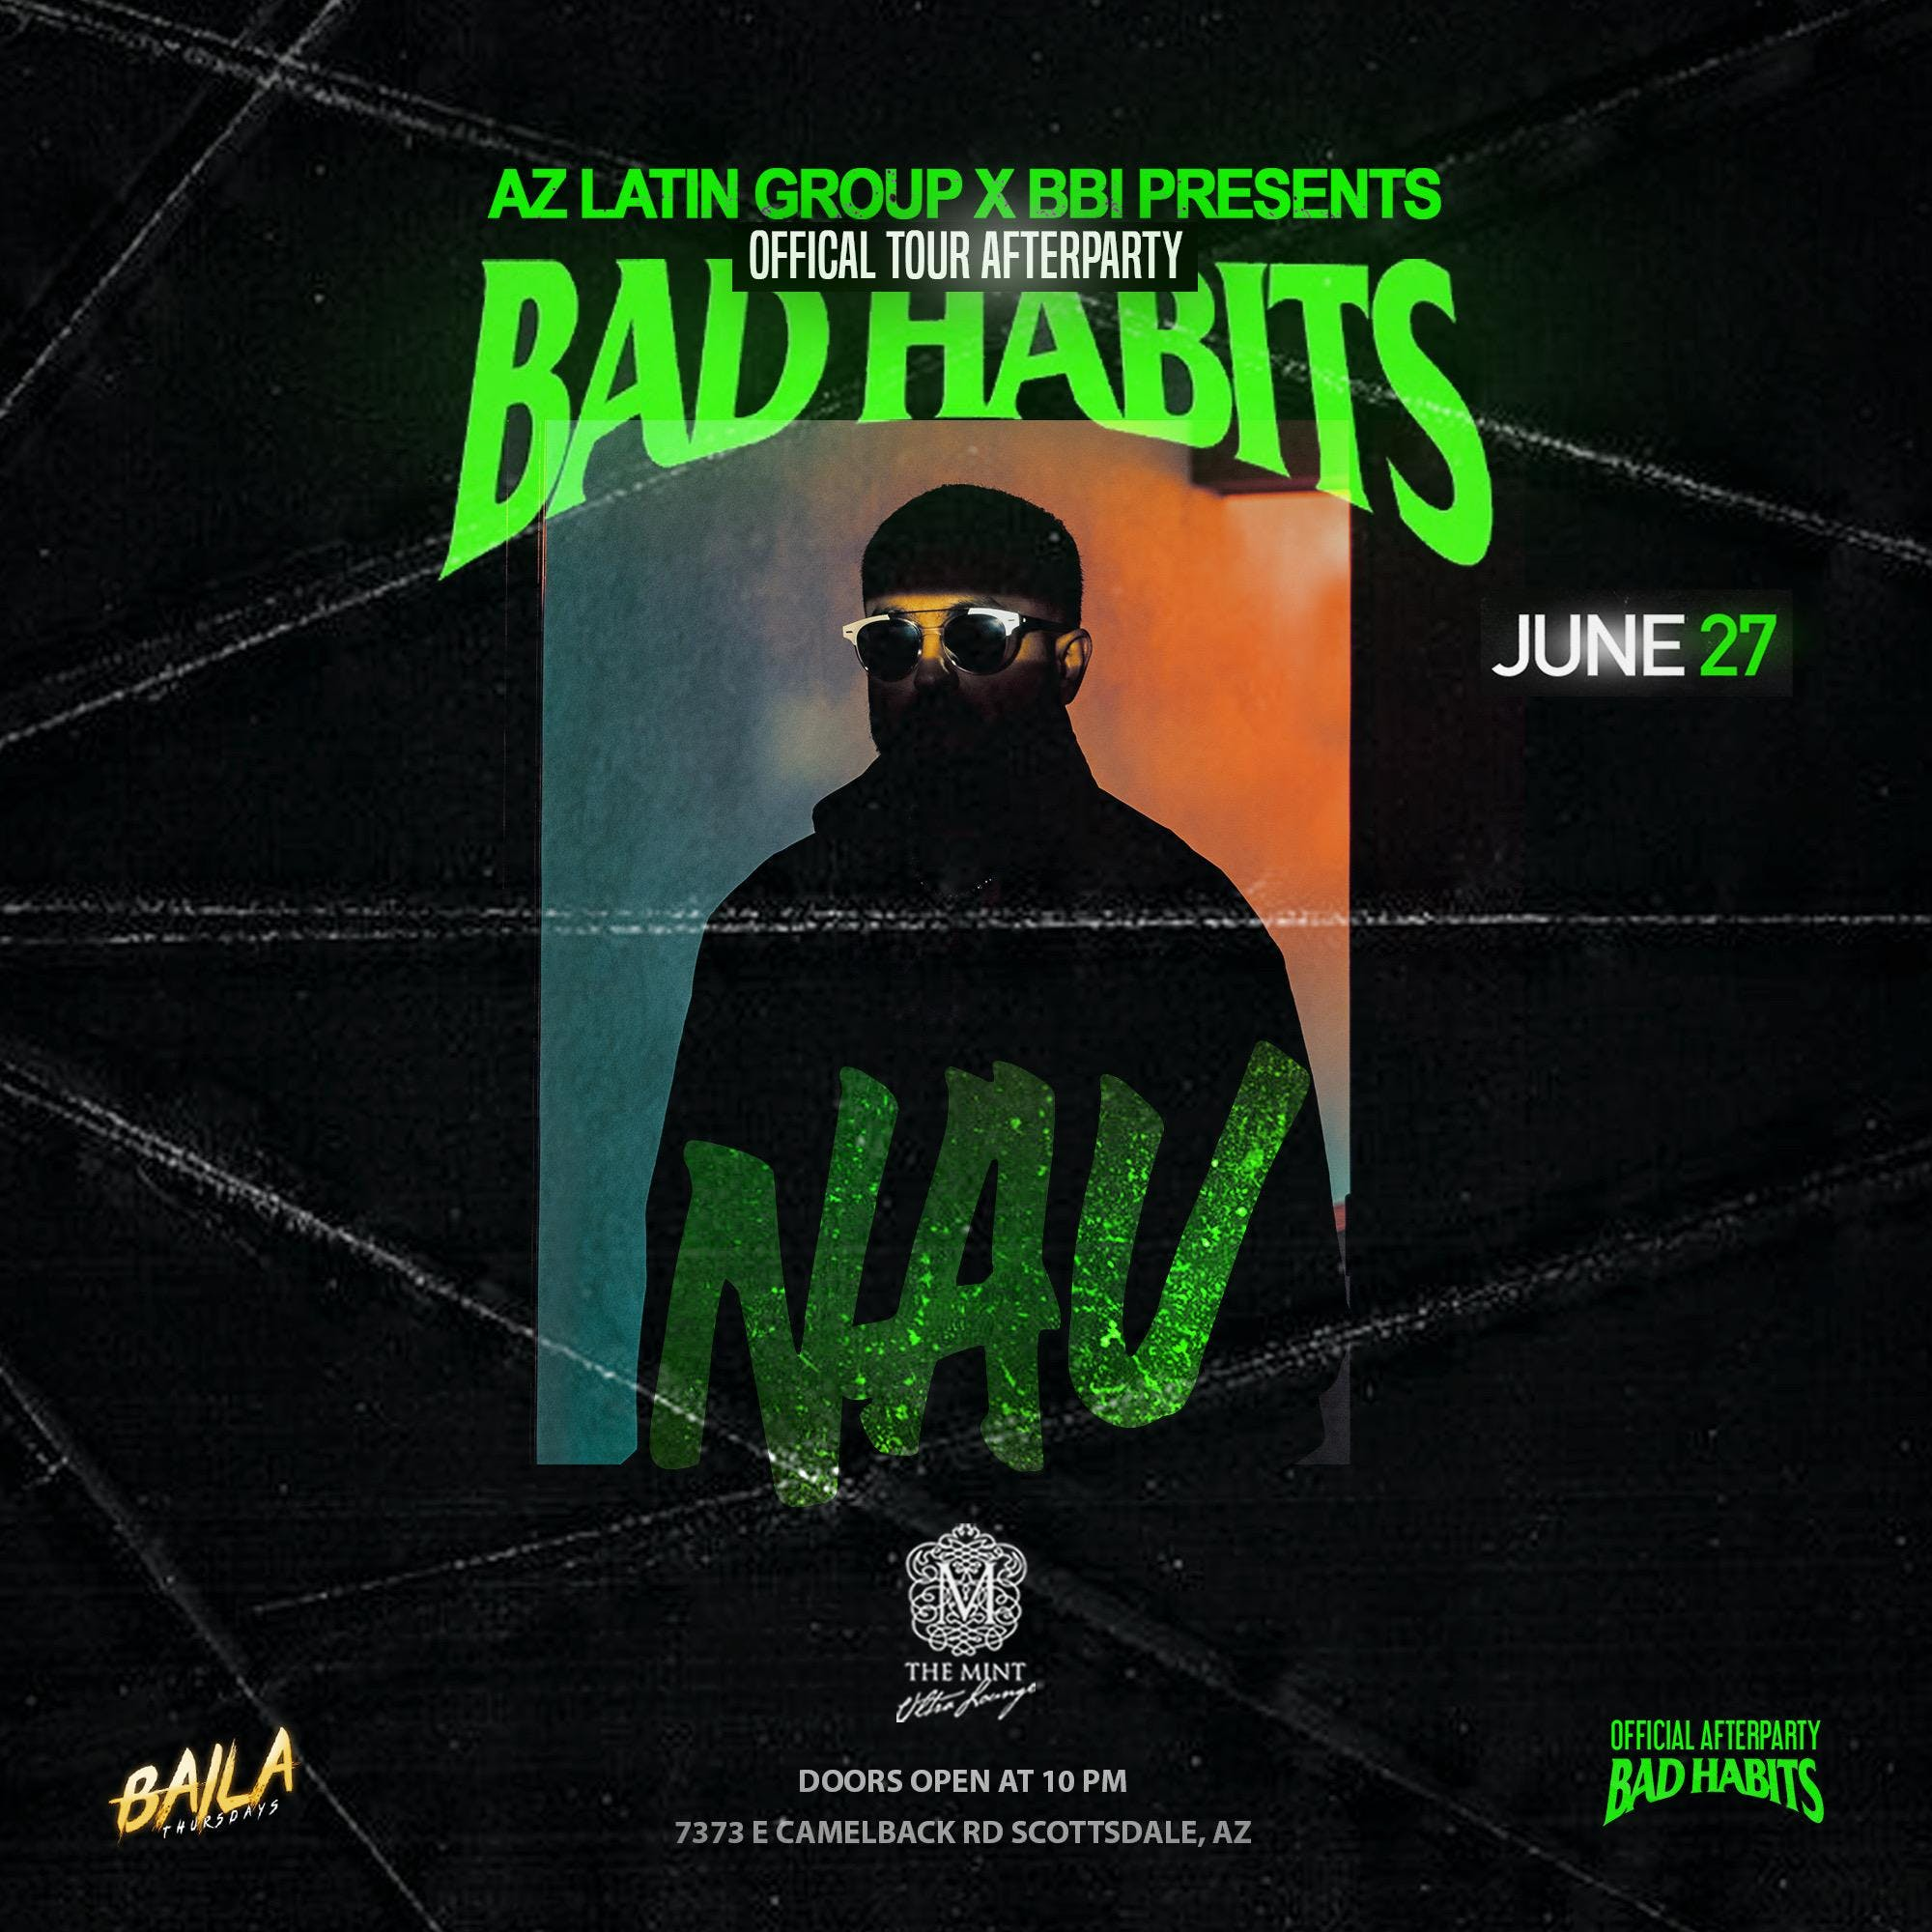 The Official BadHabits Tour AfterParty - NAV #BailaThursdays